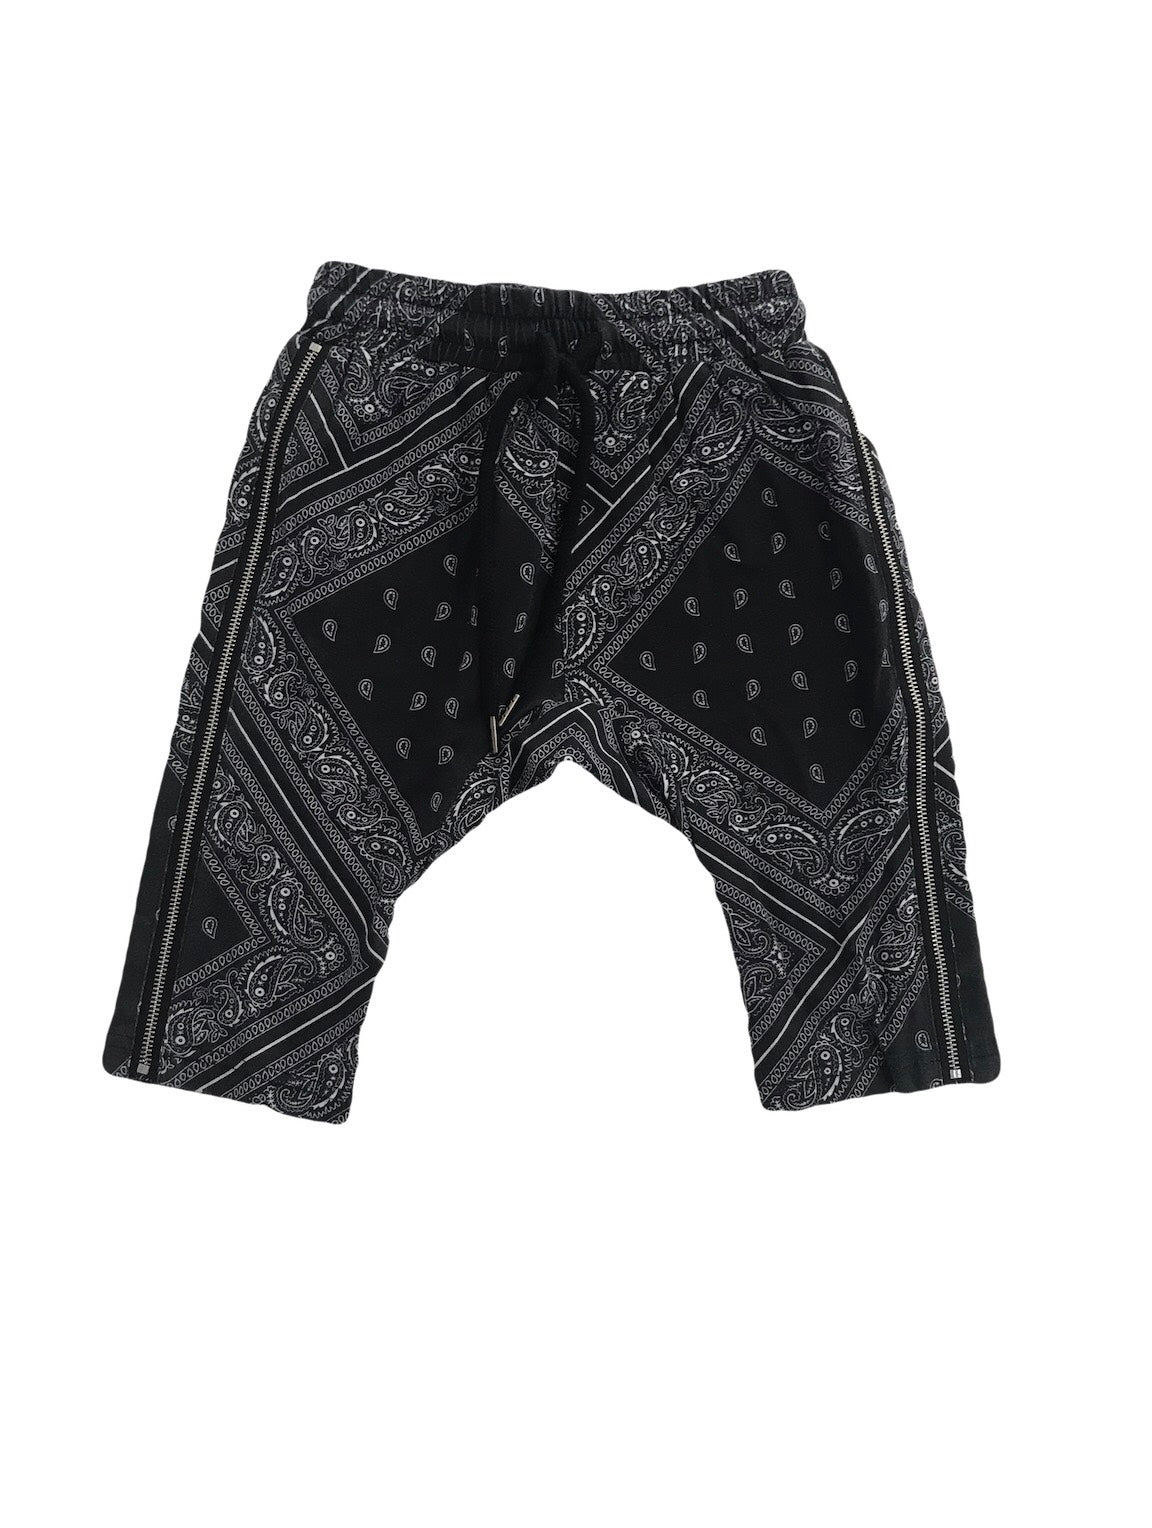 Bandana Print Kids Shorts